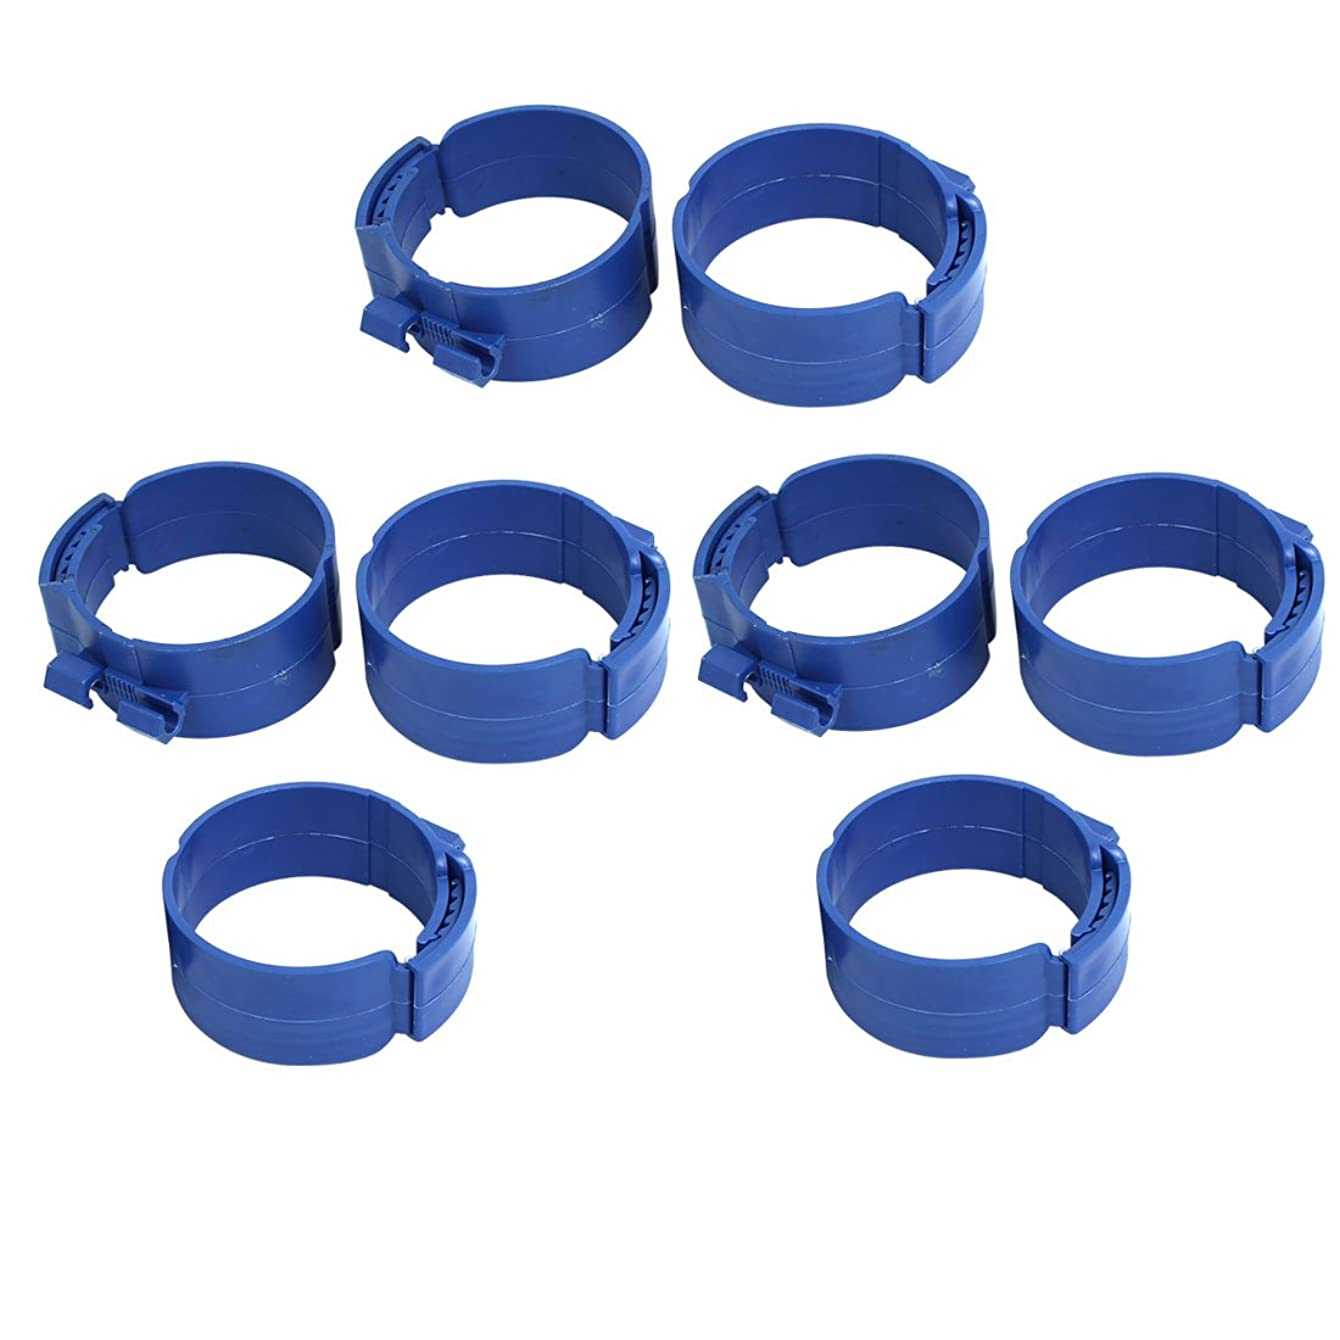 Aexit 90mm Dia Civil Equipment Hardware Accessories 38mm Width Central Air Conditioner Pipe Clip Clamp Blue 8pcs Model:61as351qo769